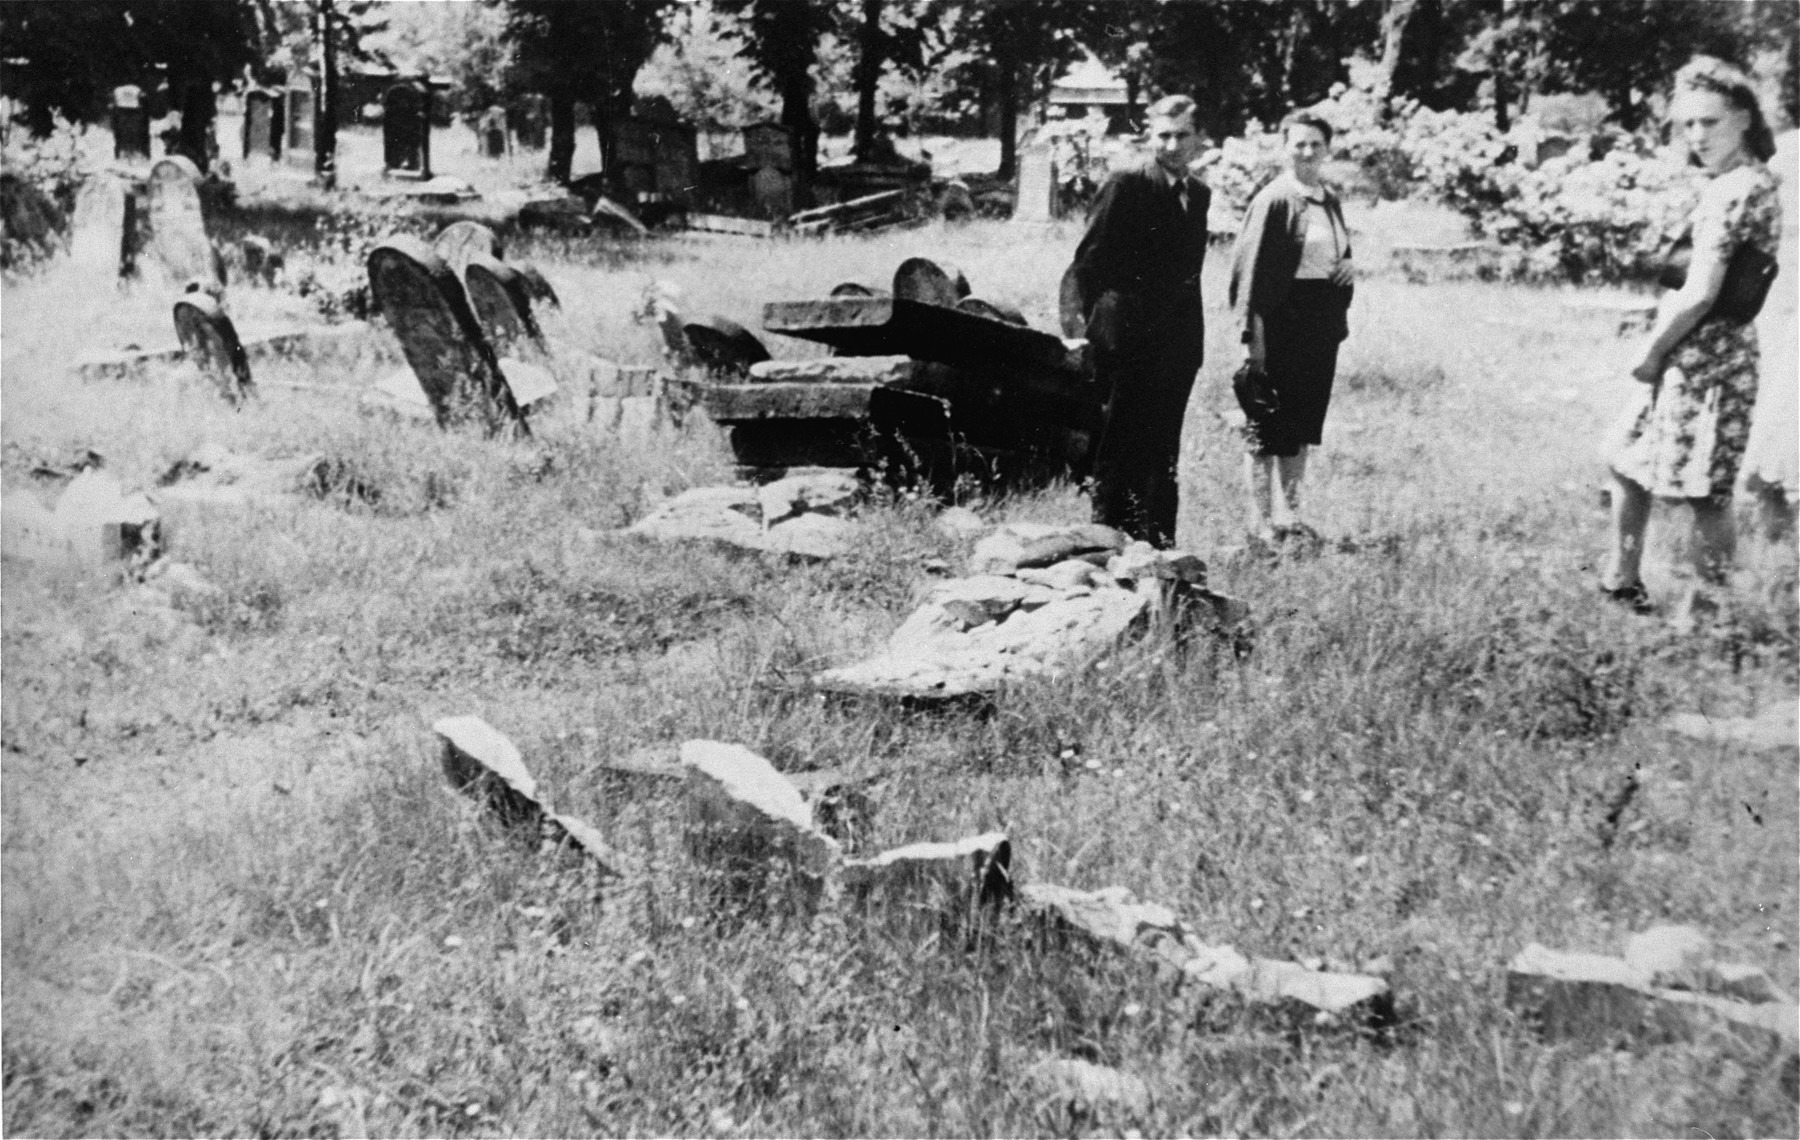 Survivors visit the Jewish cemetery in Piotrkow Trybunalski.  Among those pictured is Rose Guterman (at the far right).